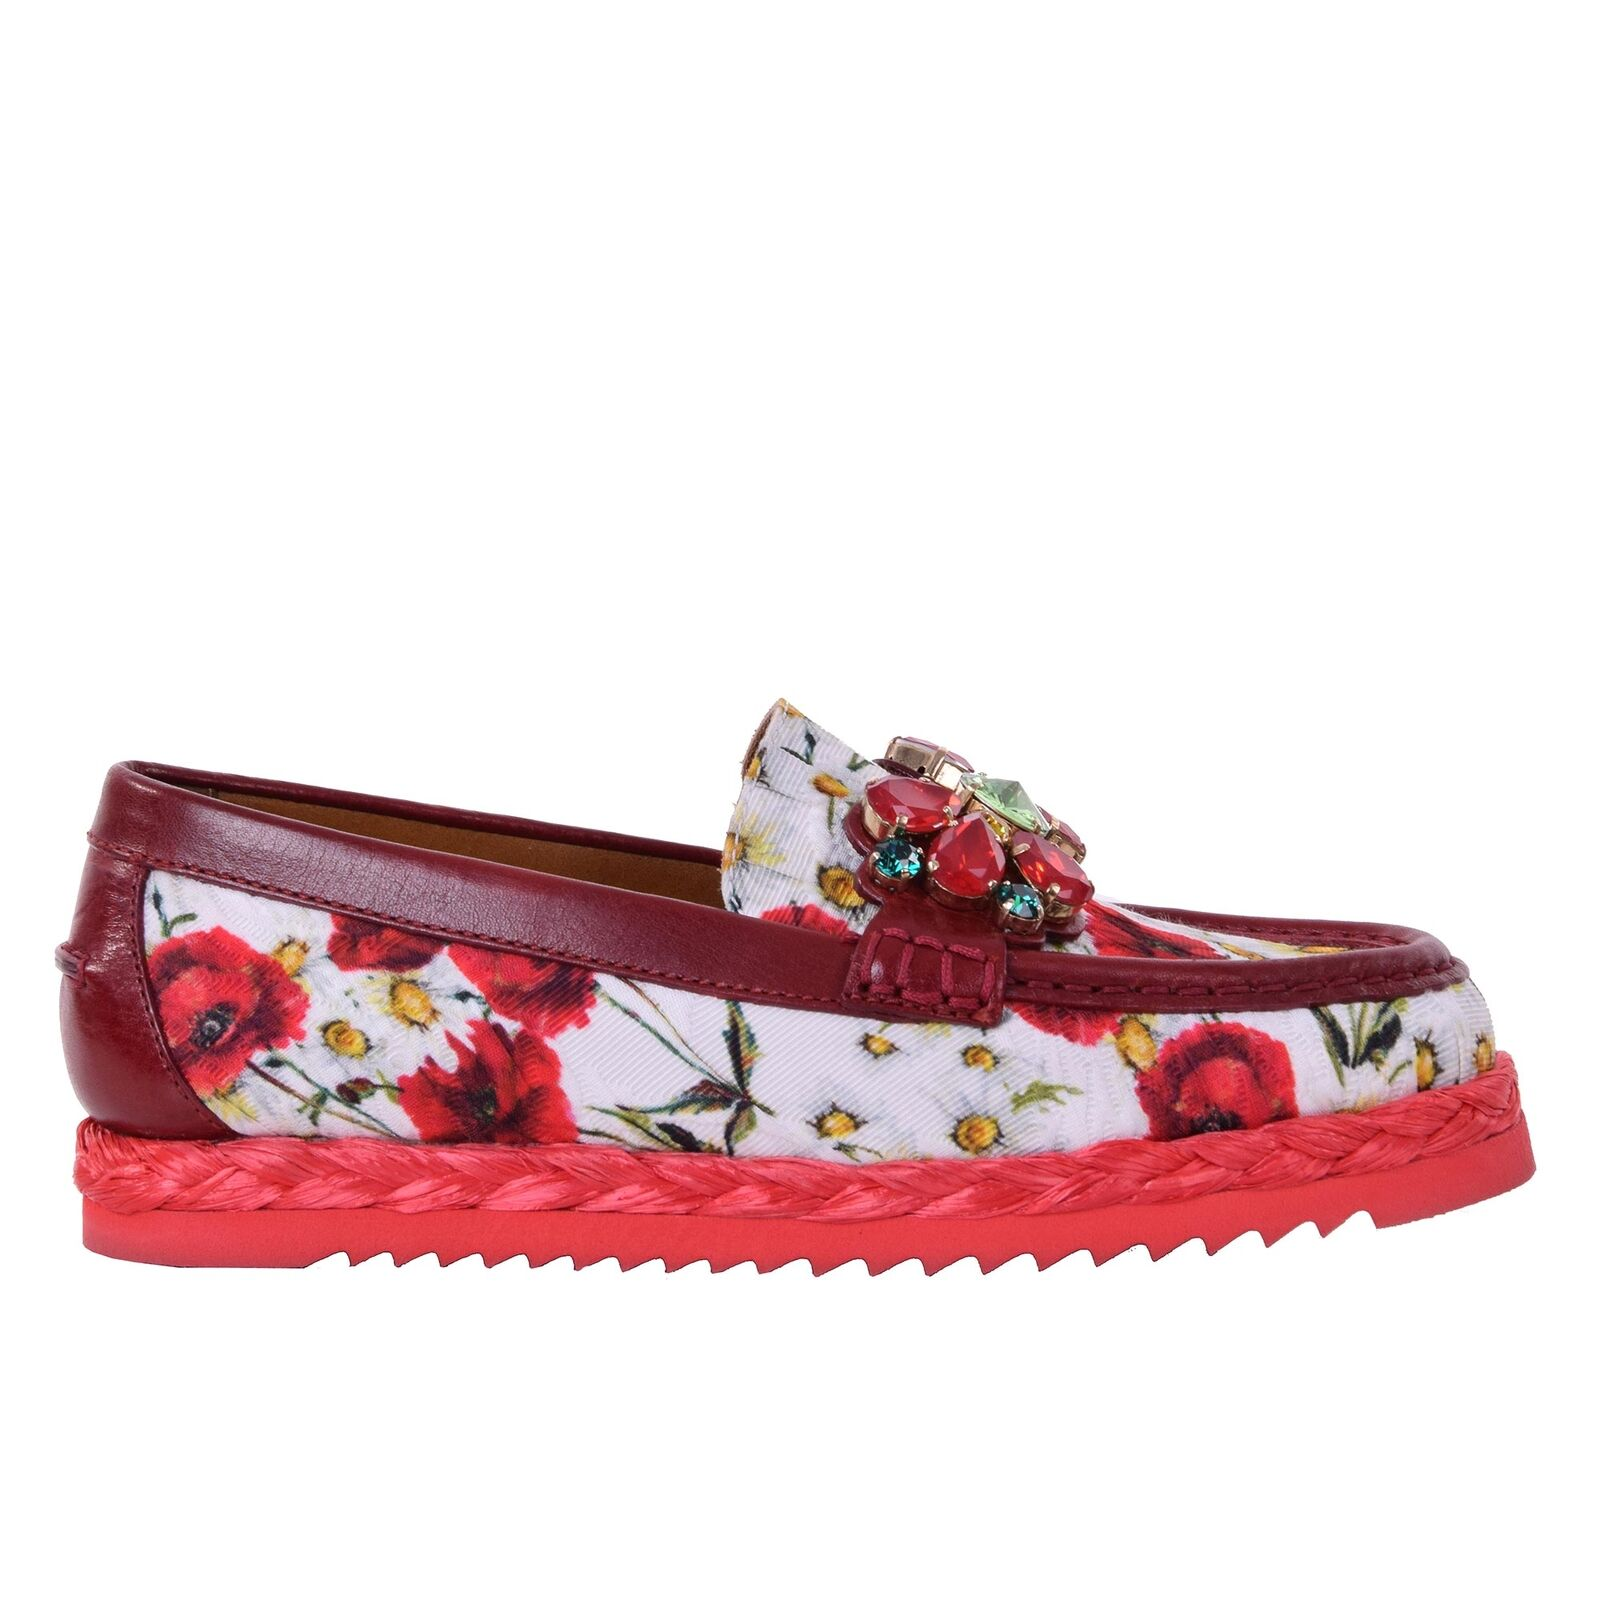 DOLCE & GABBANA Crystals Carnation Shoes Brocade Moccasins Flats Shoes Carnation Red White 06760 a1174f